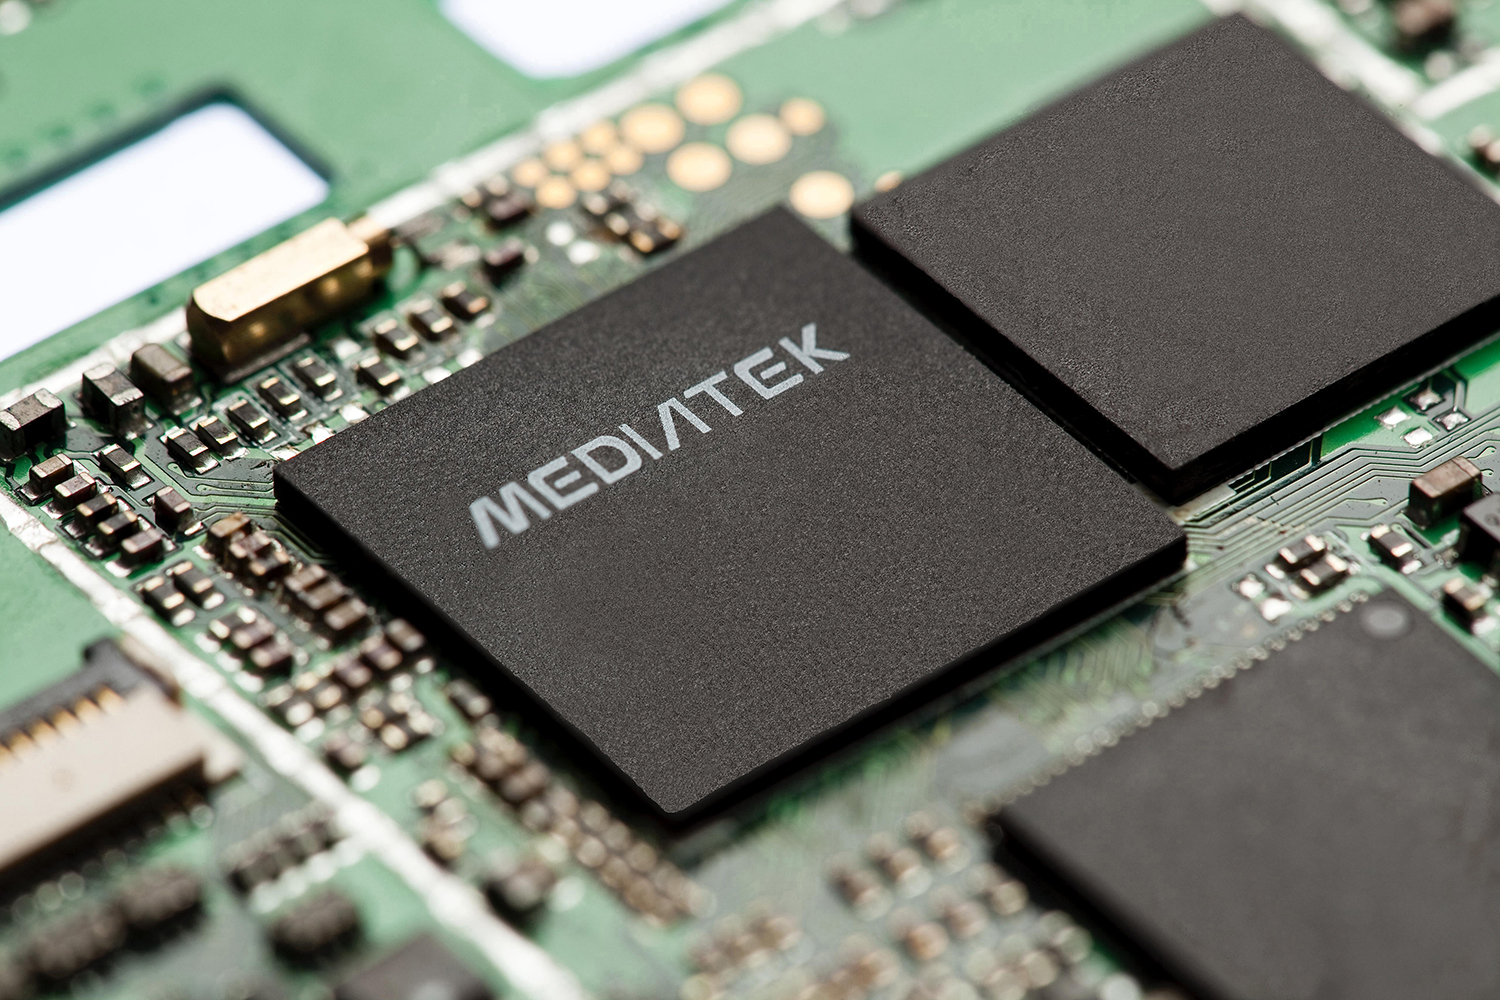 MediaTek Provides Advanced Wireless Solutions for Smart Devices in Today's Connected Homes